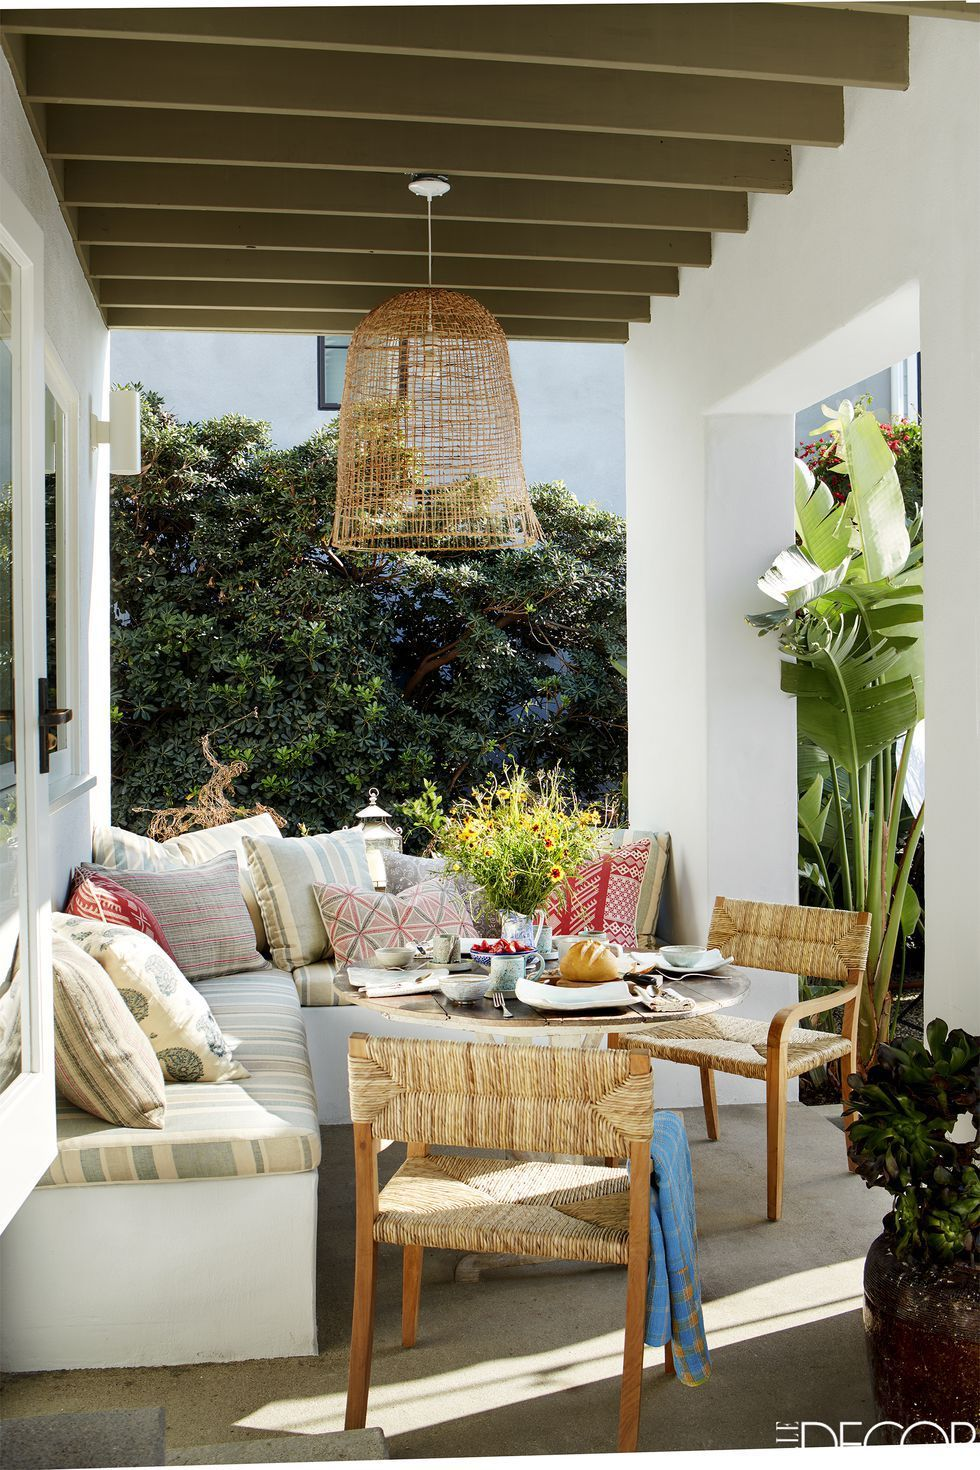 35 Porch Decorating Ideas - Front and Back Porch Design ... on Back Patio Porch Ideas id=17370